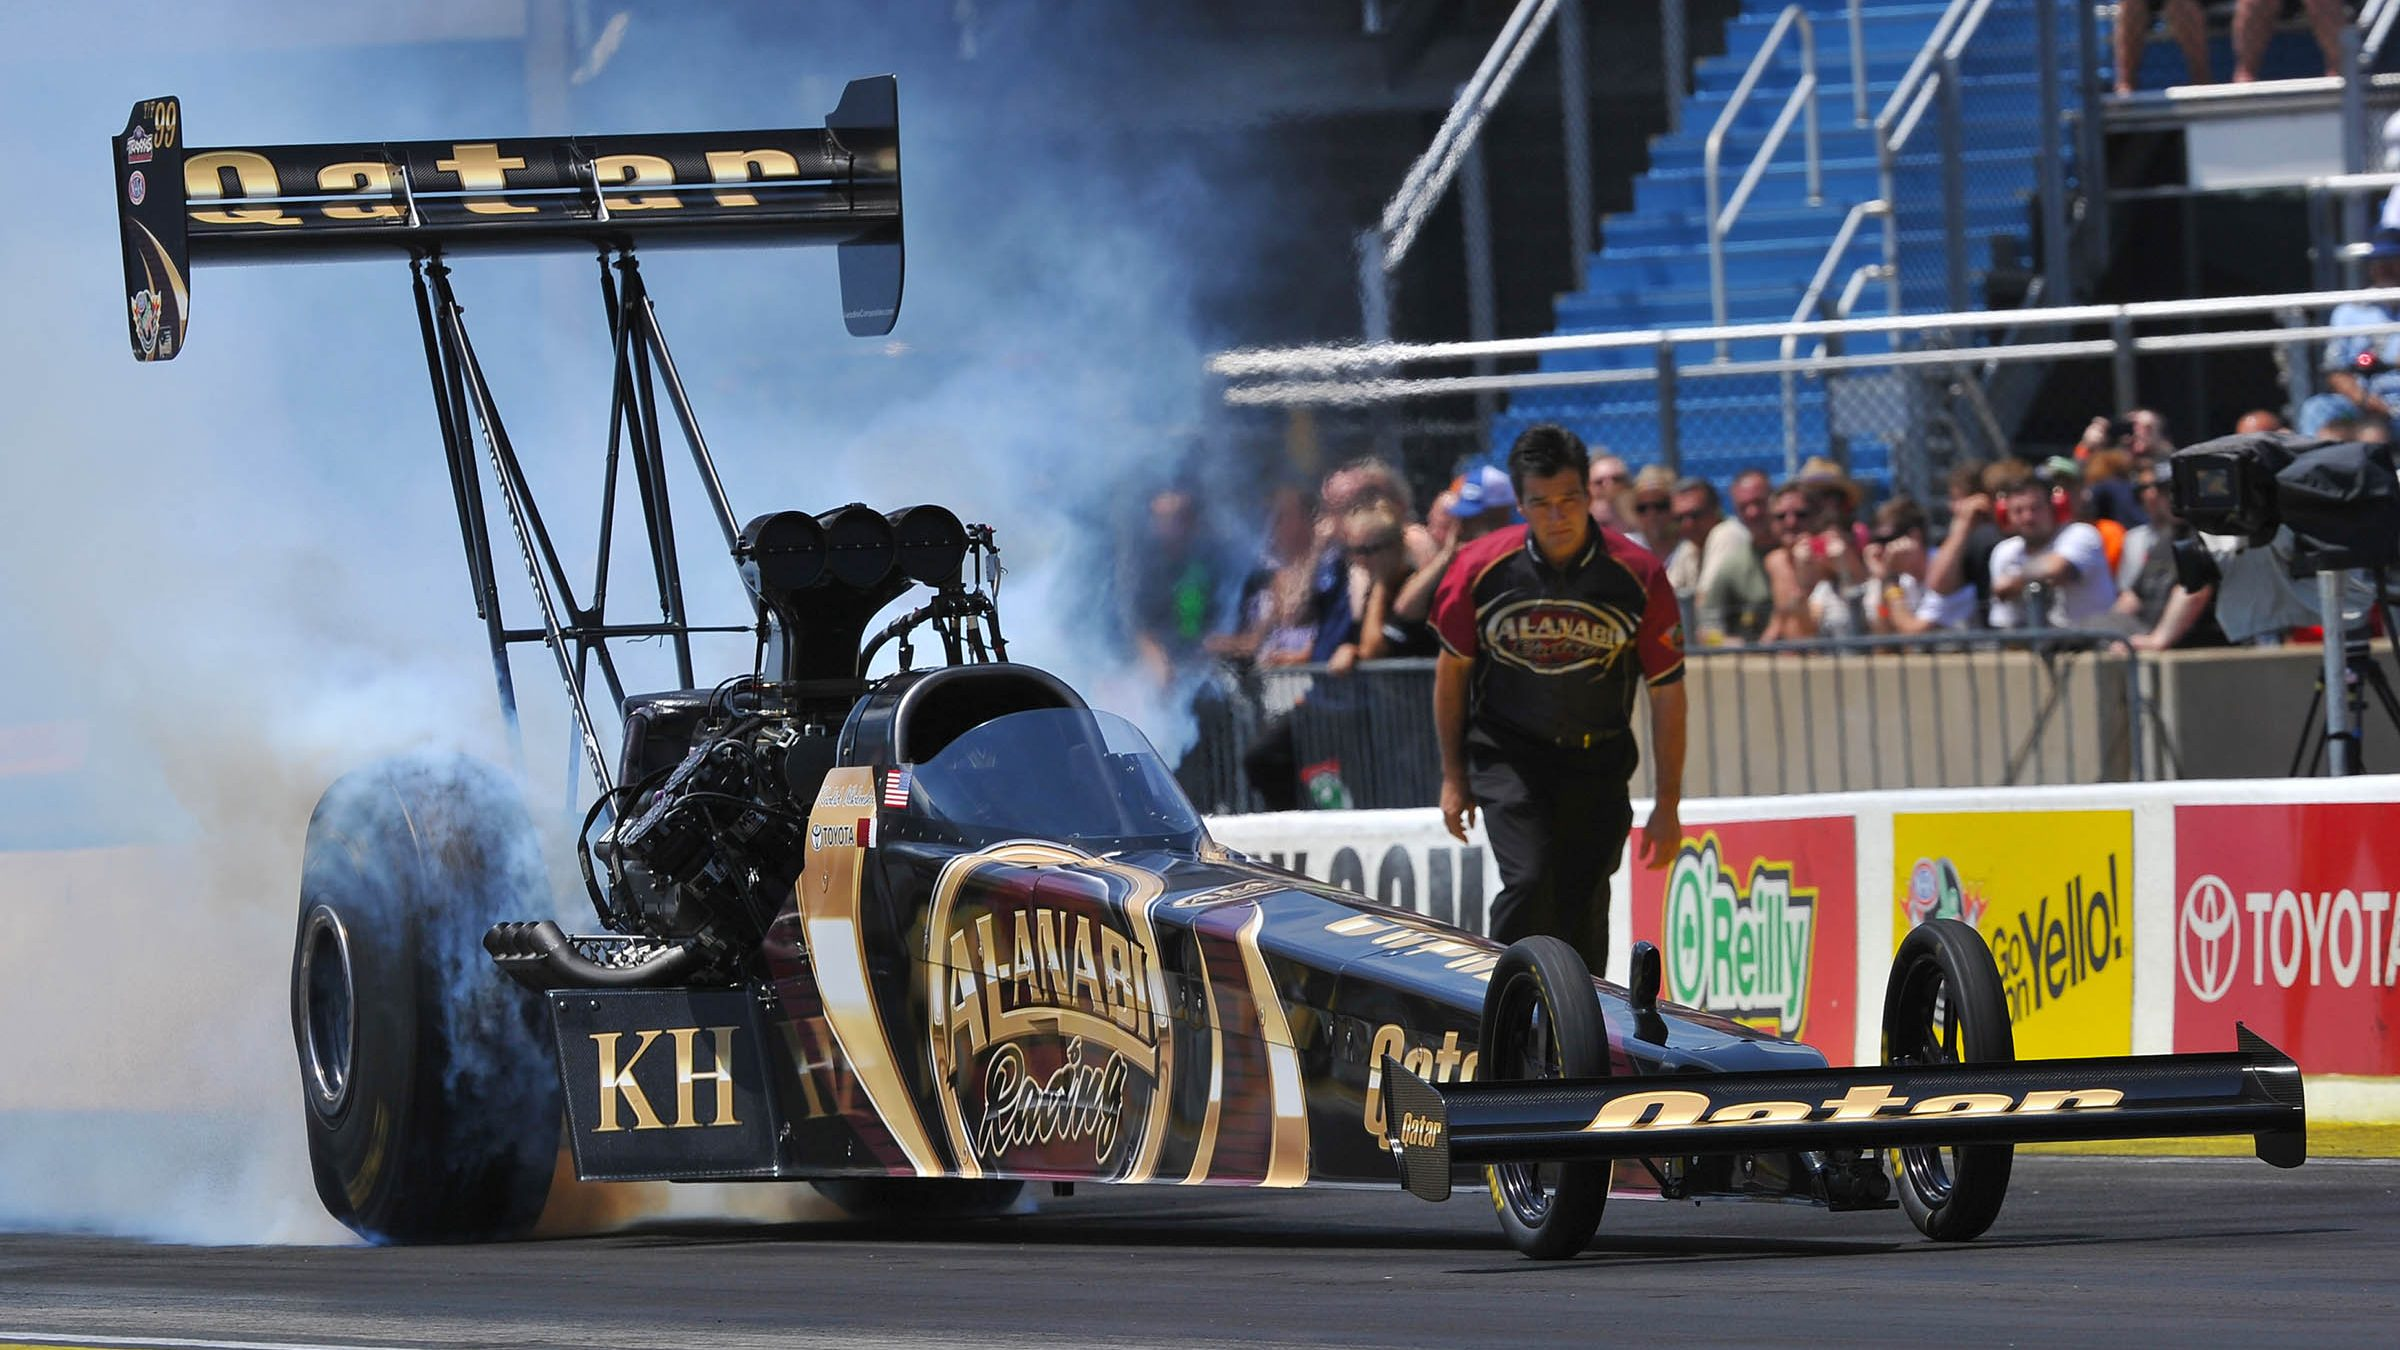 Drag: Qatar's Al Anabi Racing strong results at NHRA season halfway point